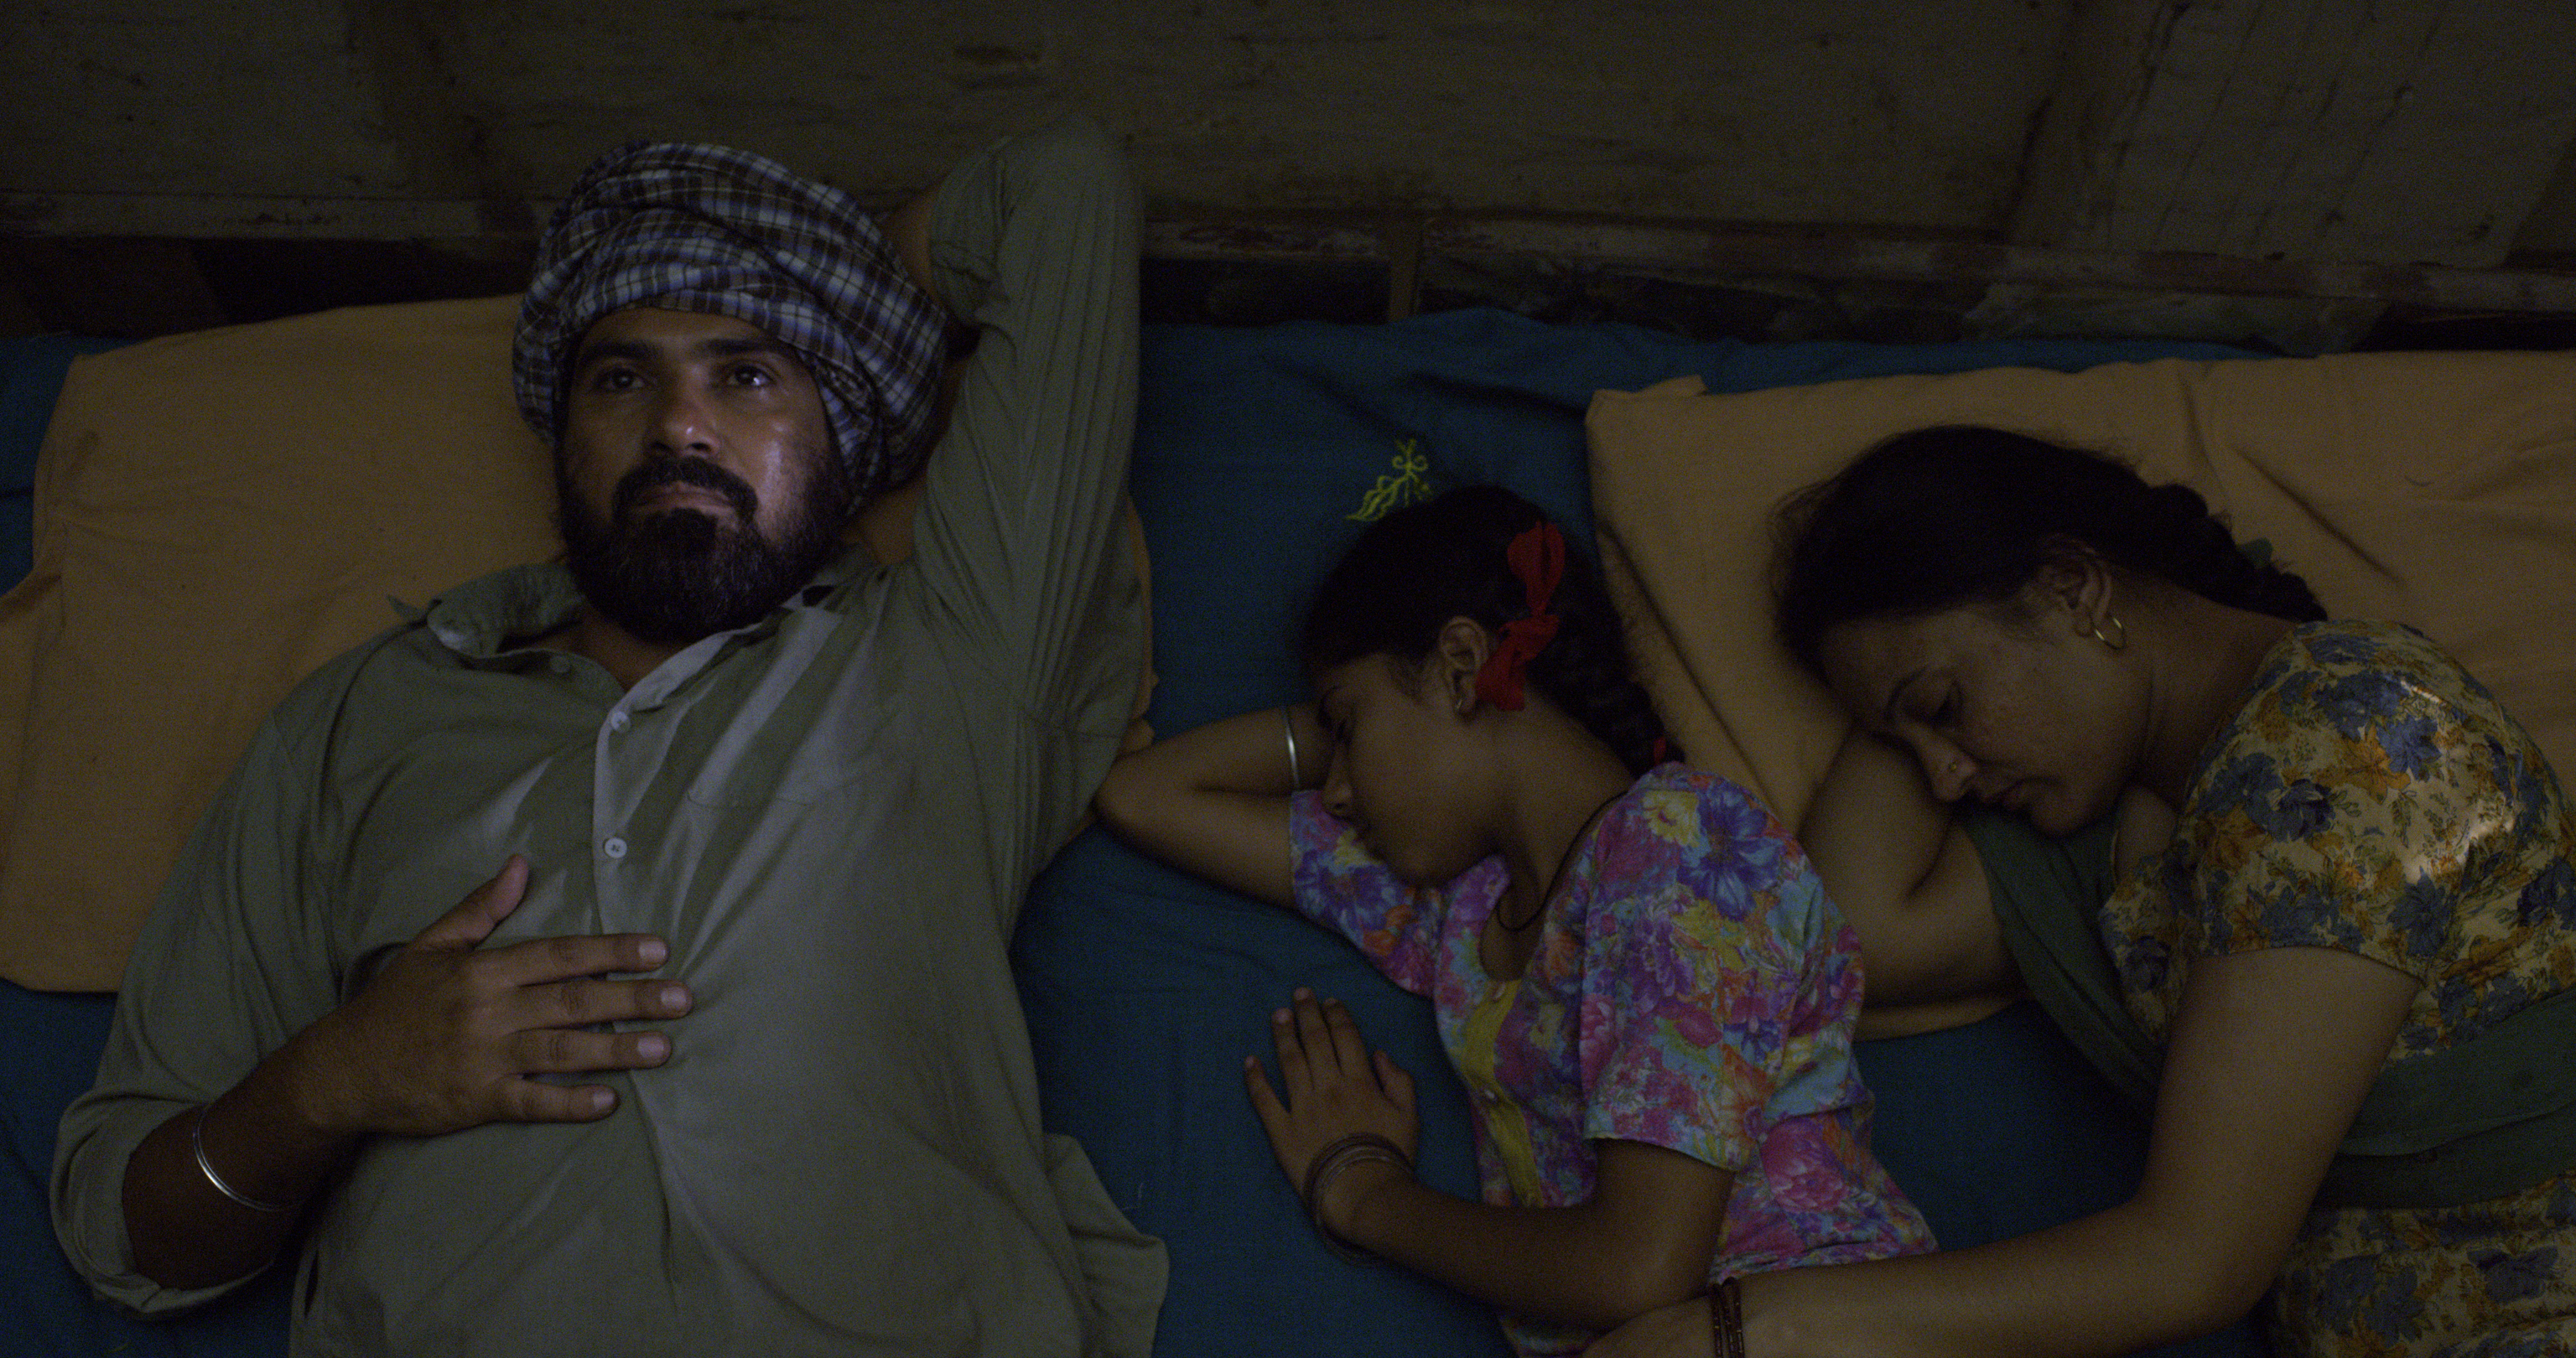 The Fourth Direction: un'immagine del film di Gurvinder Singh